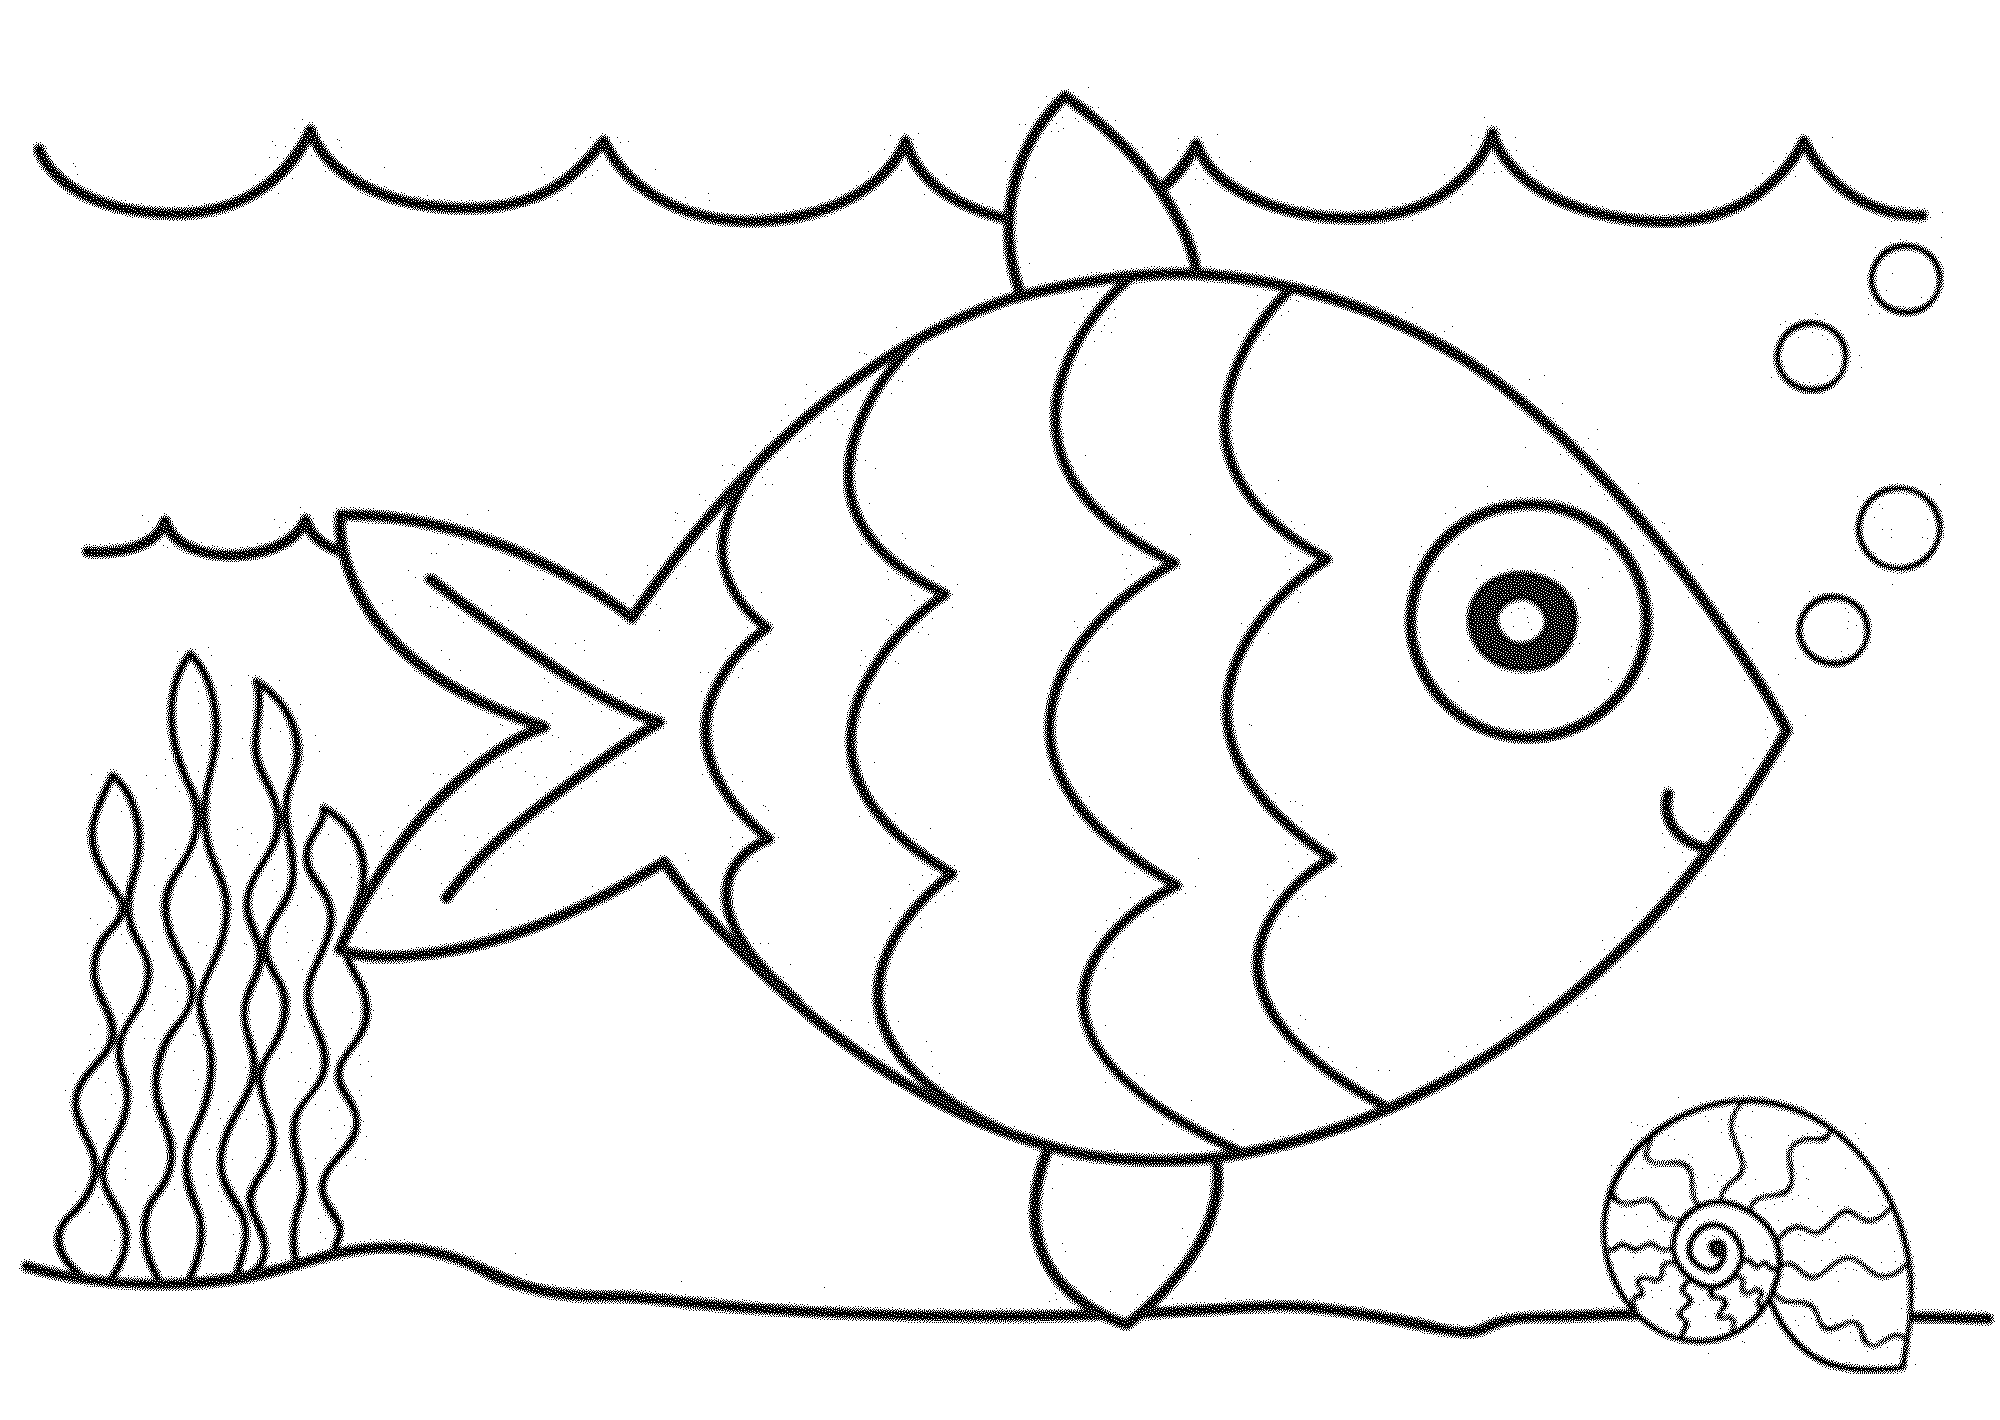 Print & Download - Cute and Educative Fish Coloring Pages